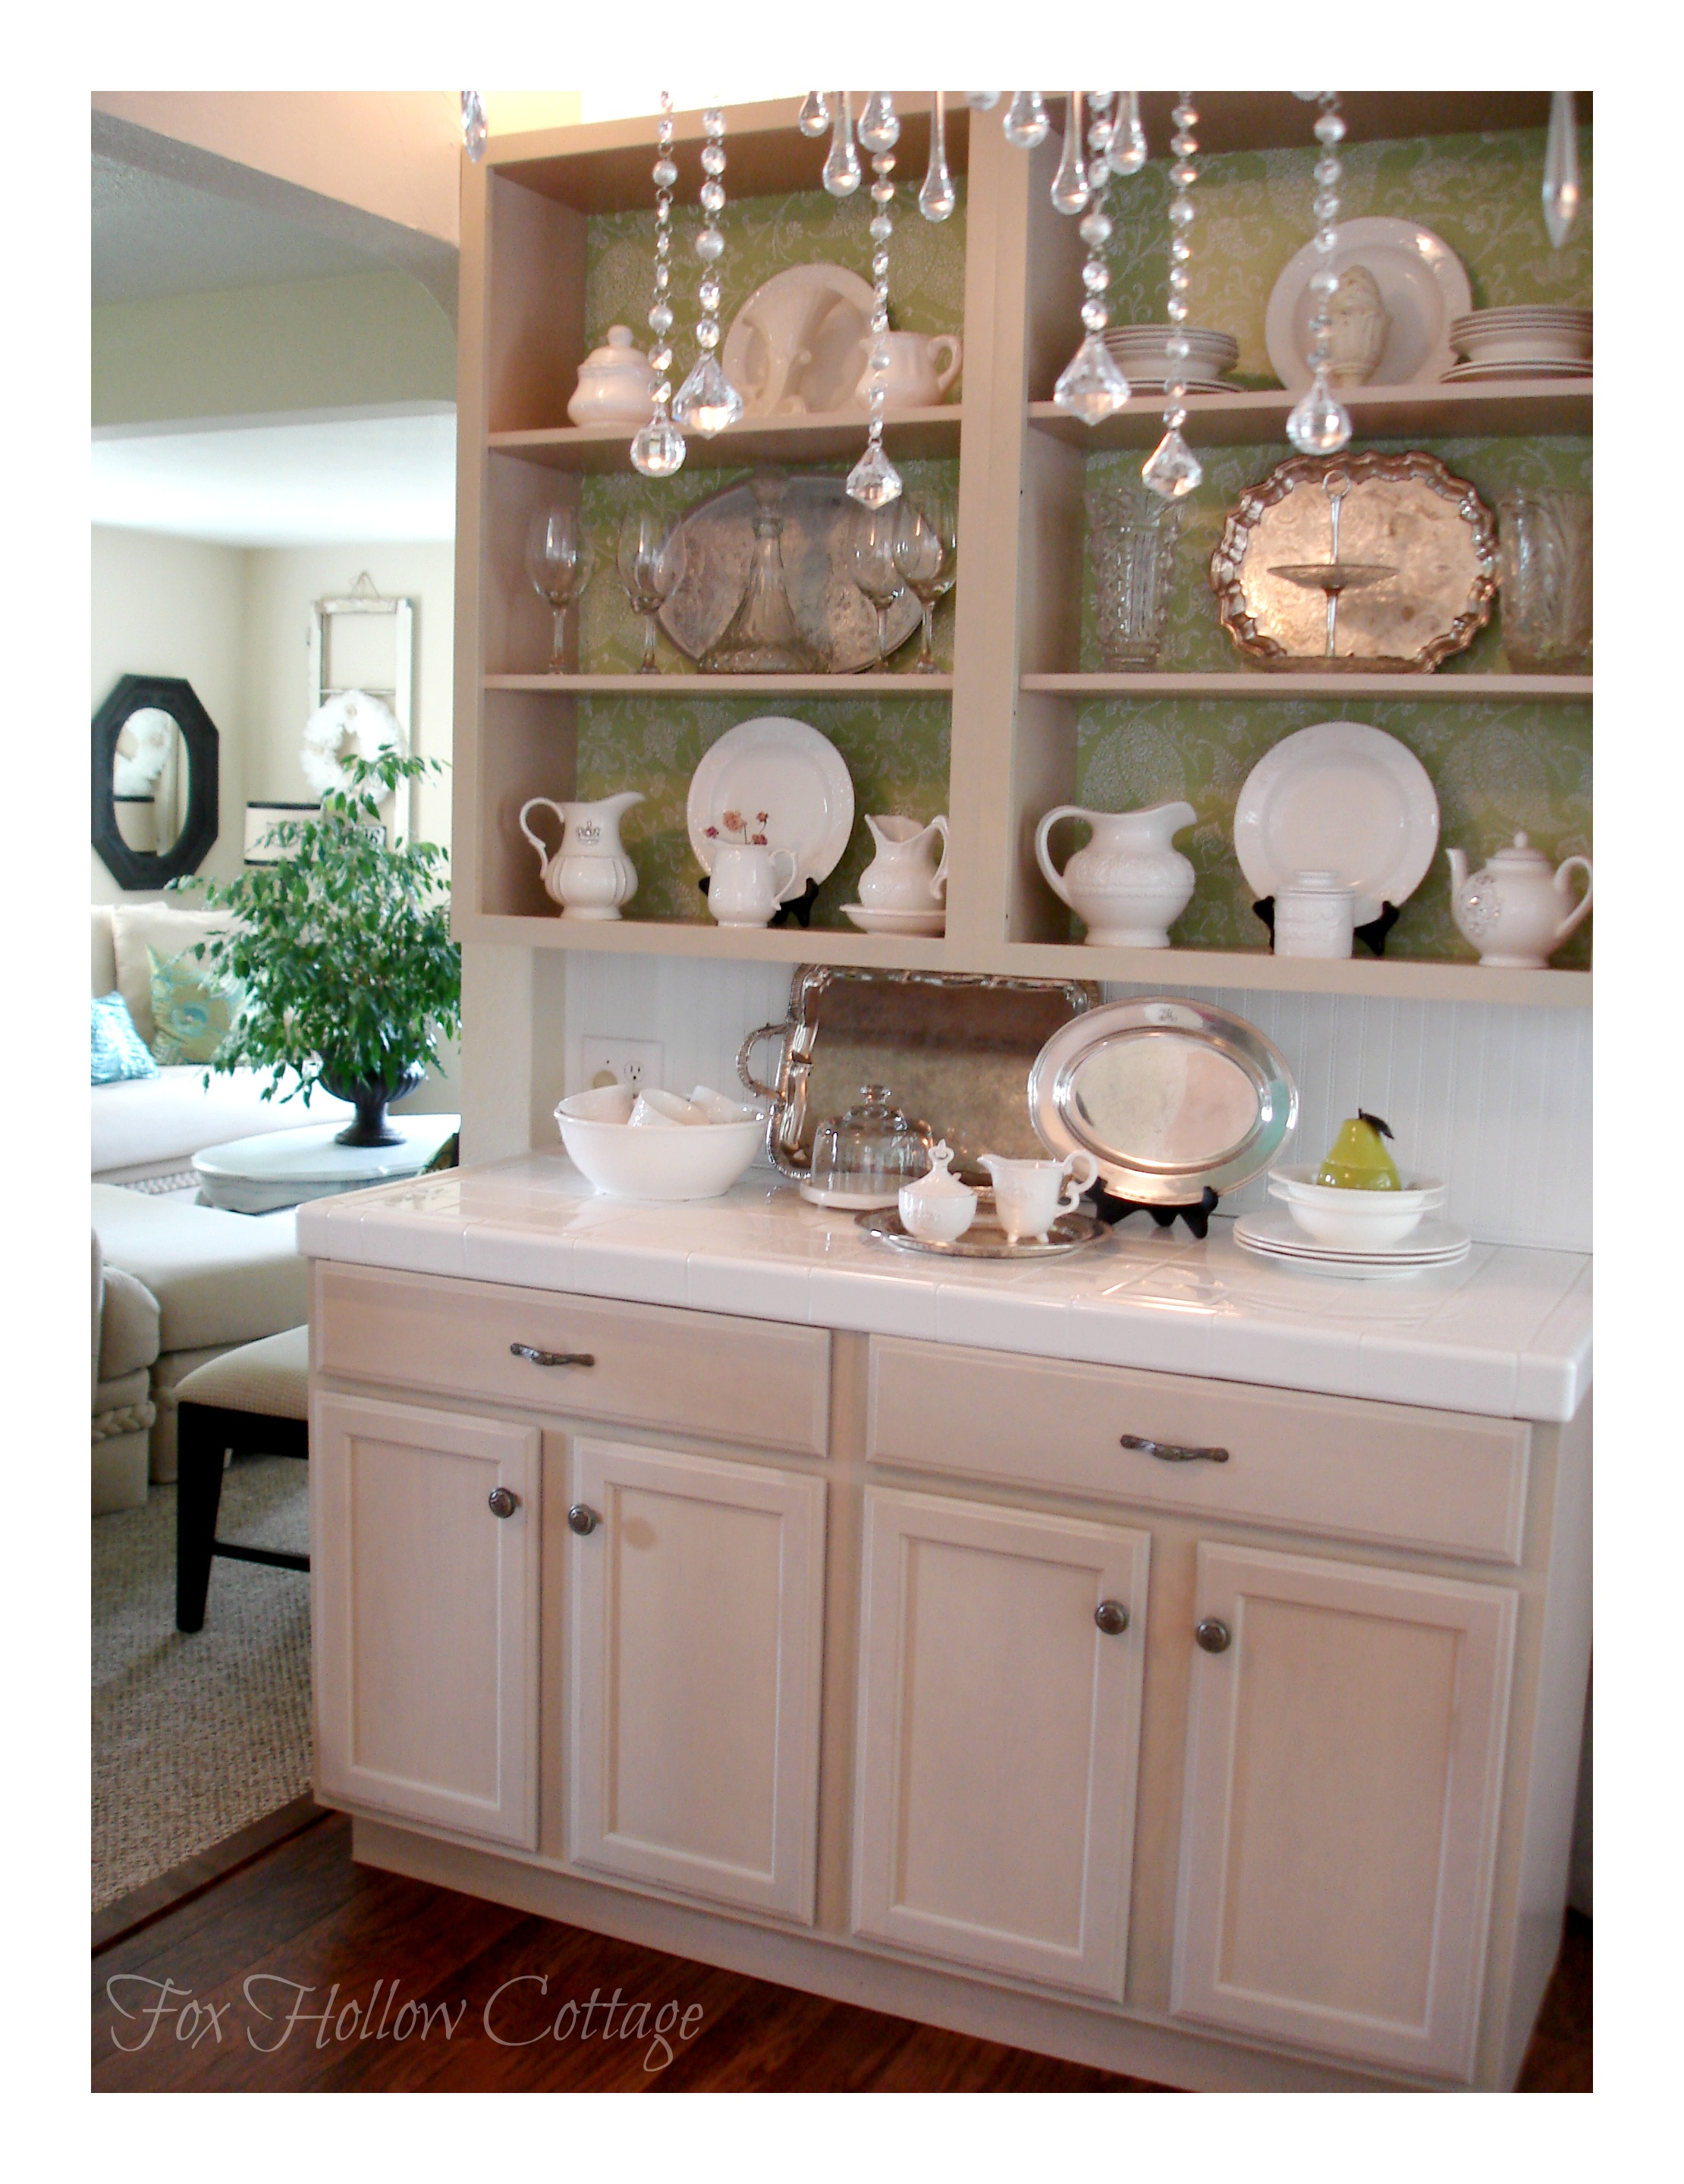 A kitchen cabinet makeover to diy for and a giveaway - Kitchen cabinet diy makeover ...